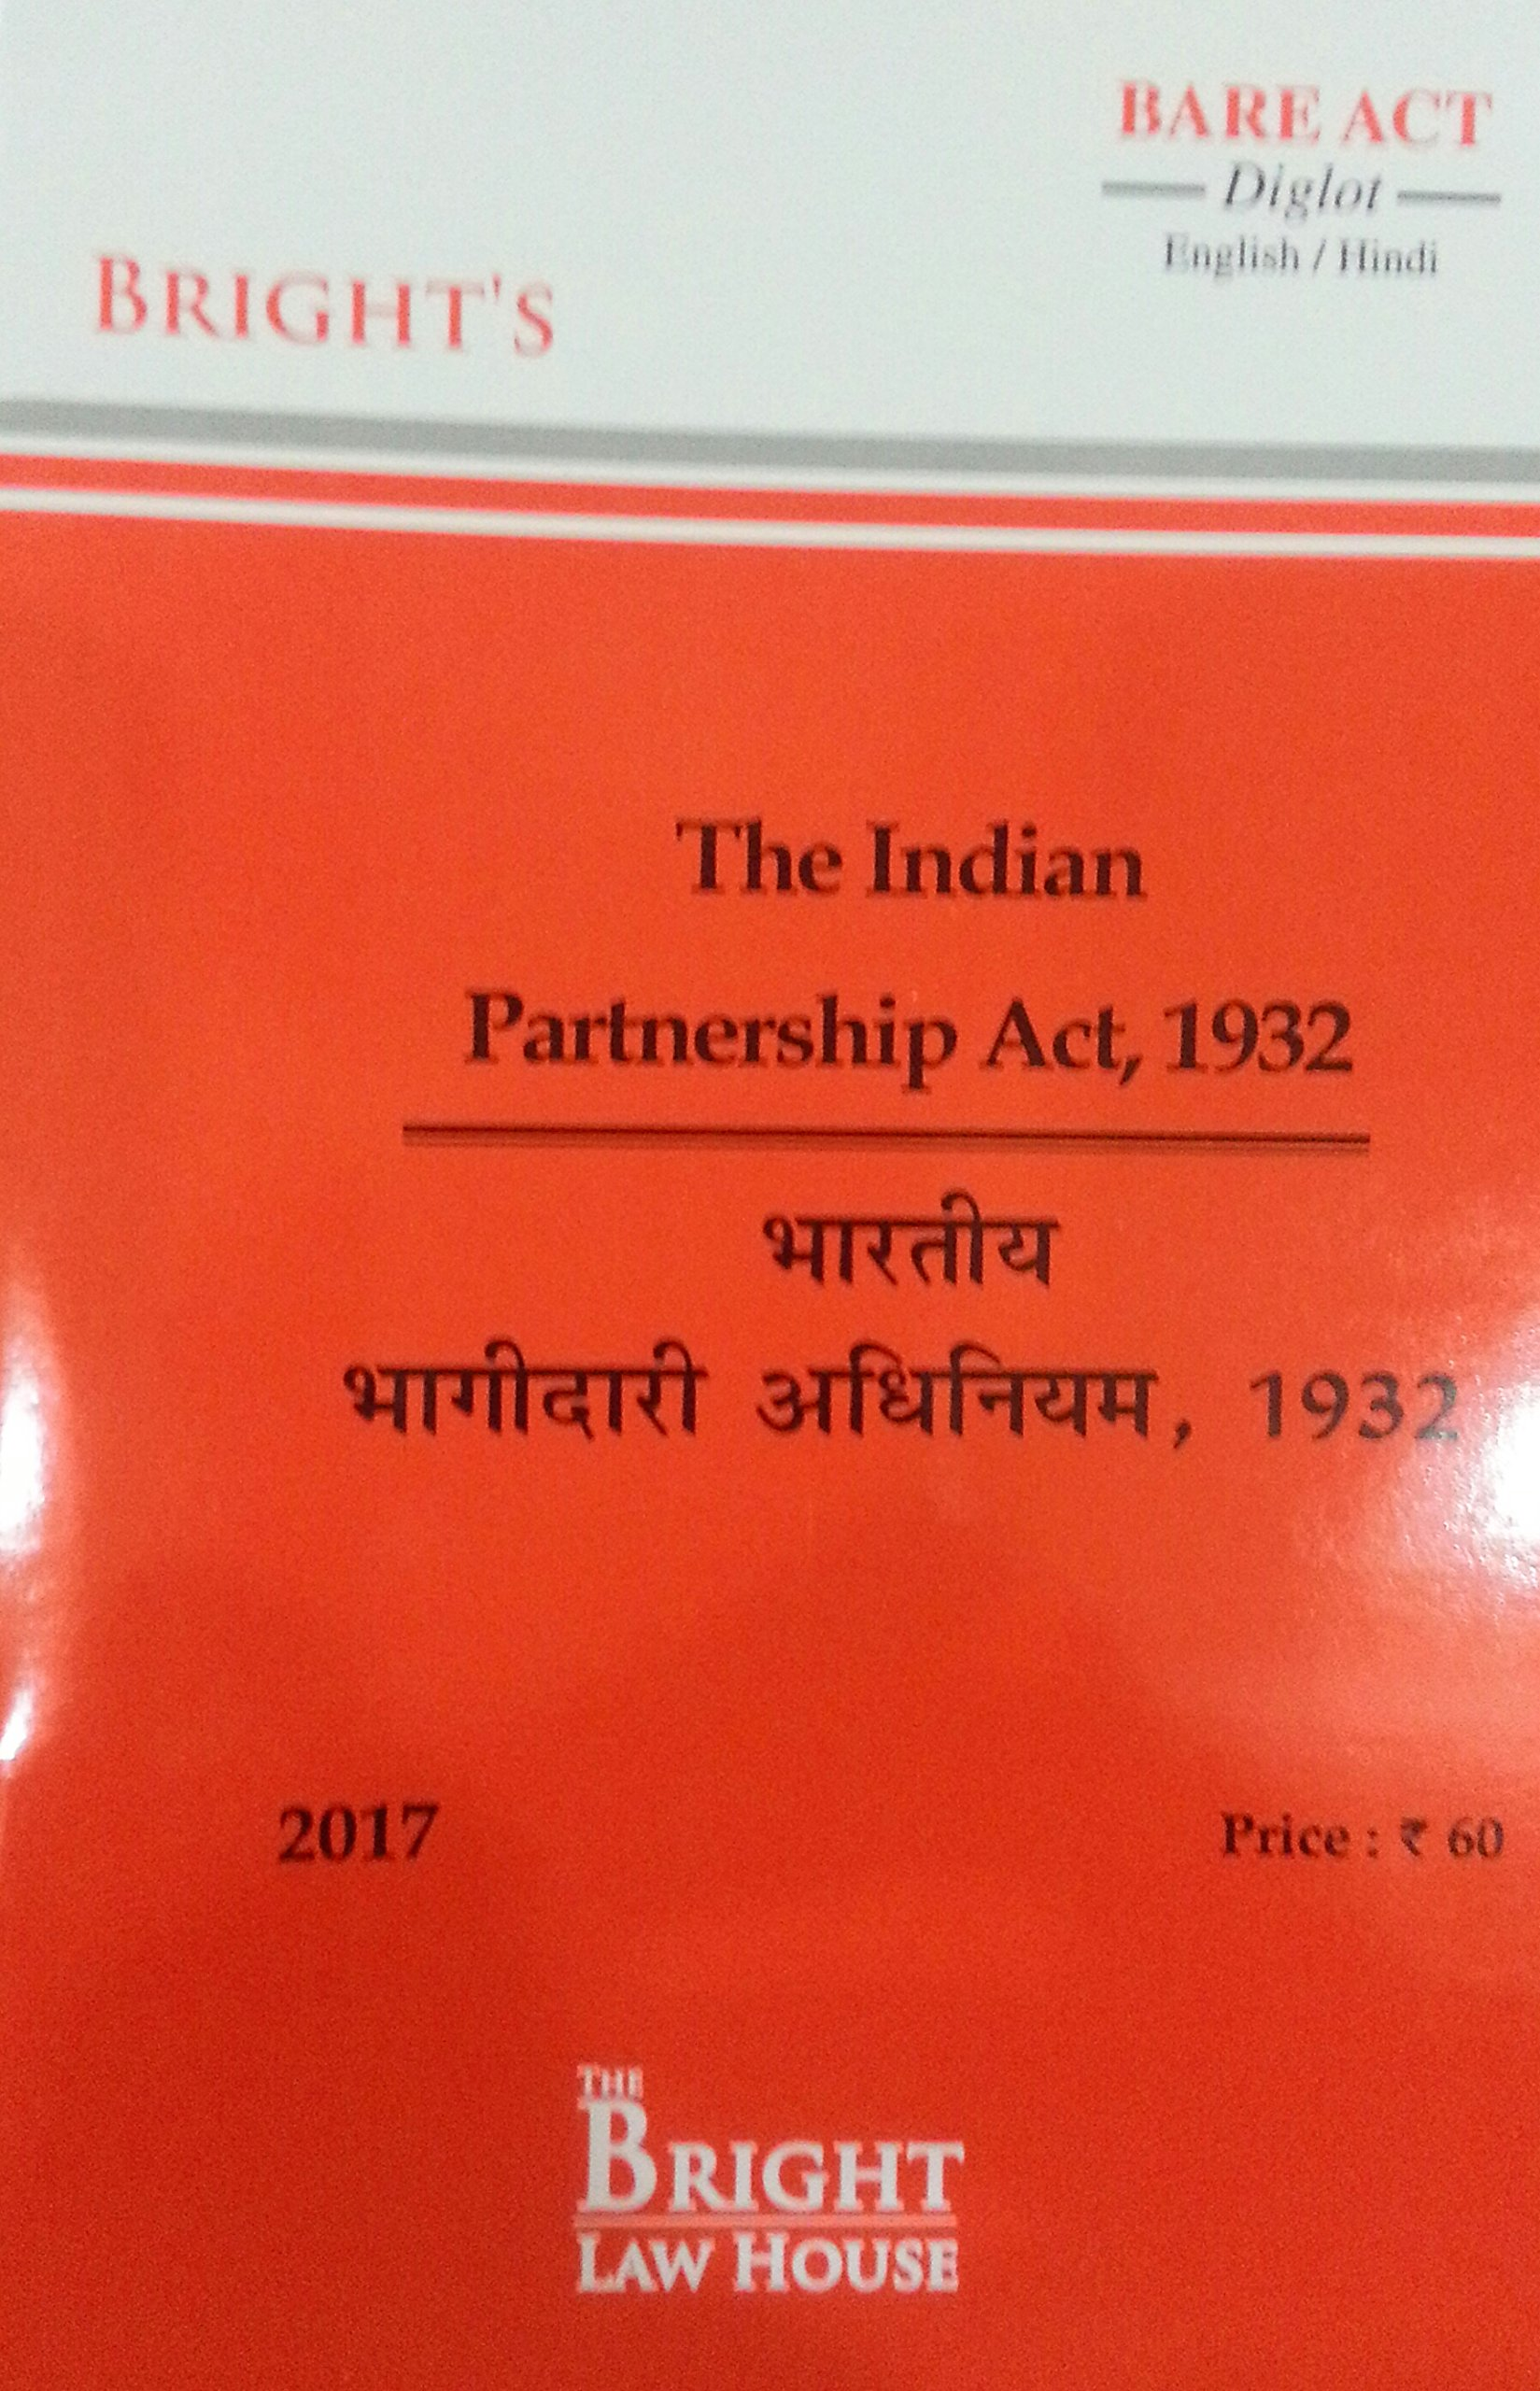 Partnership act pdf bare act indian 1932